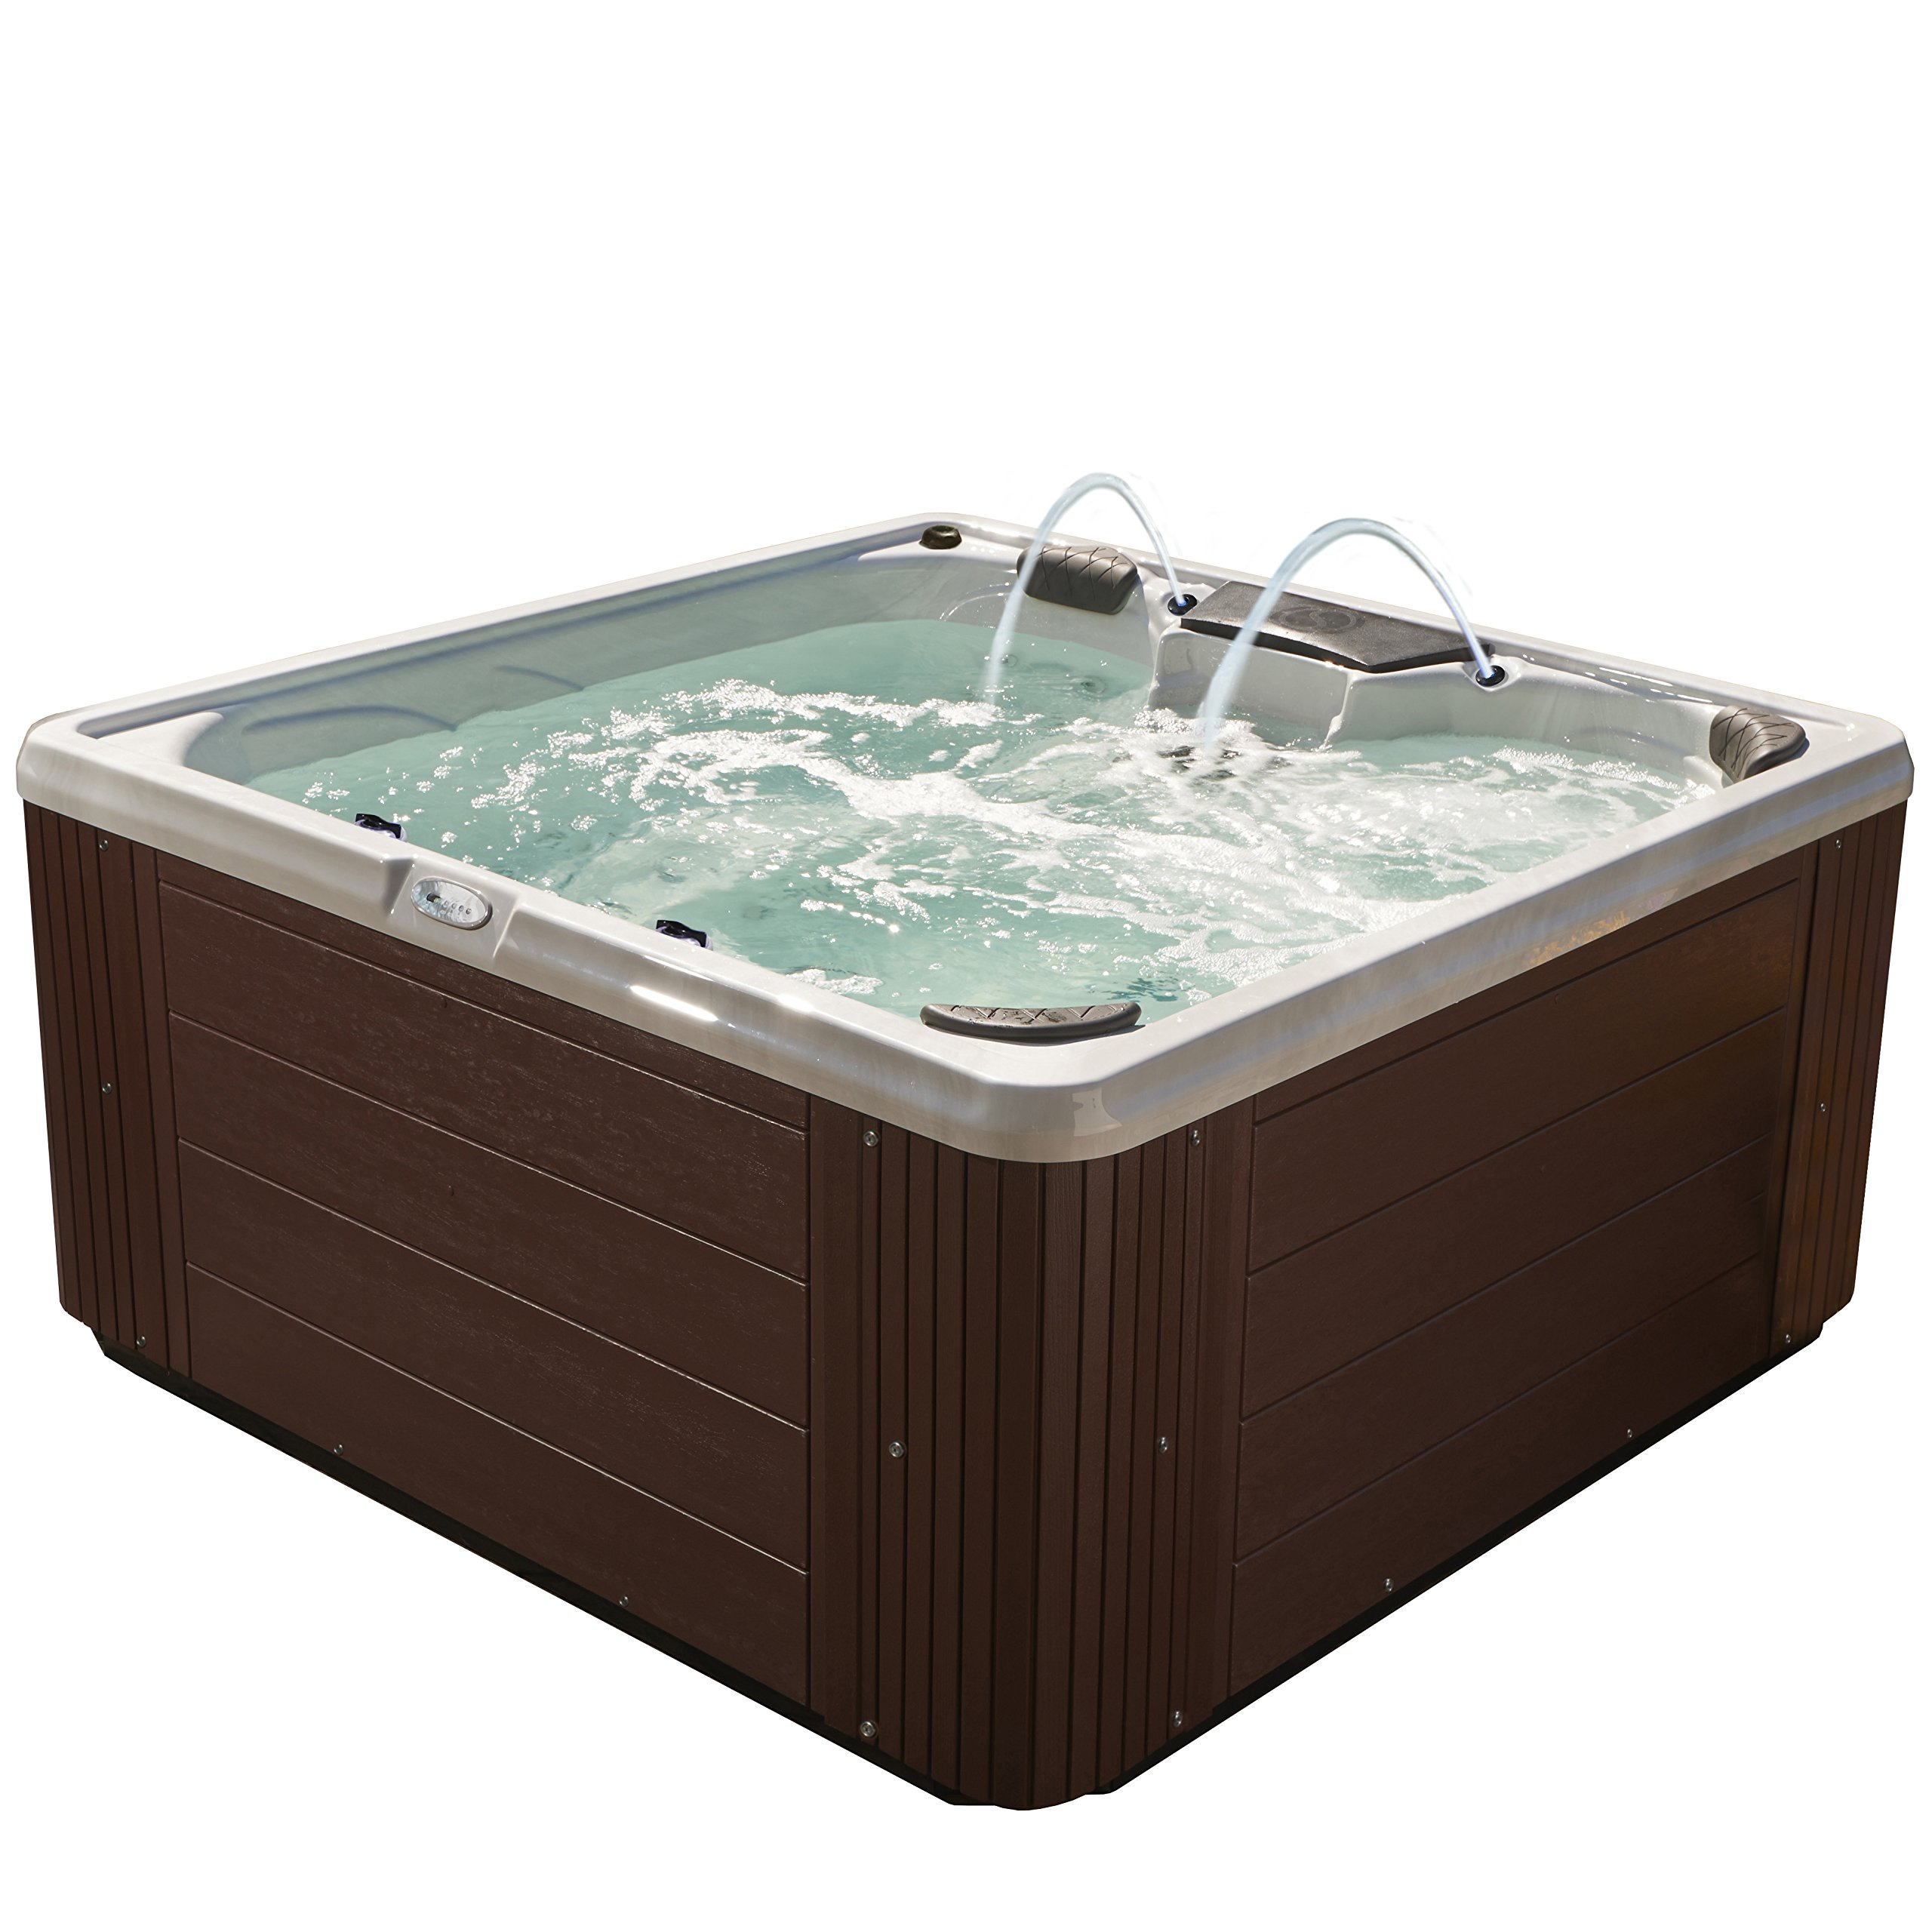 Best Rated In Outdoor Hot Tubs Helpful Customer Reviews Tub Wiring Cost Essential Ss2540307003 Adelaide 30 Jet Espresso Product Image